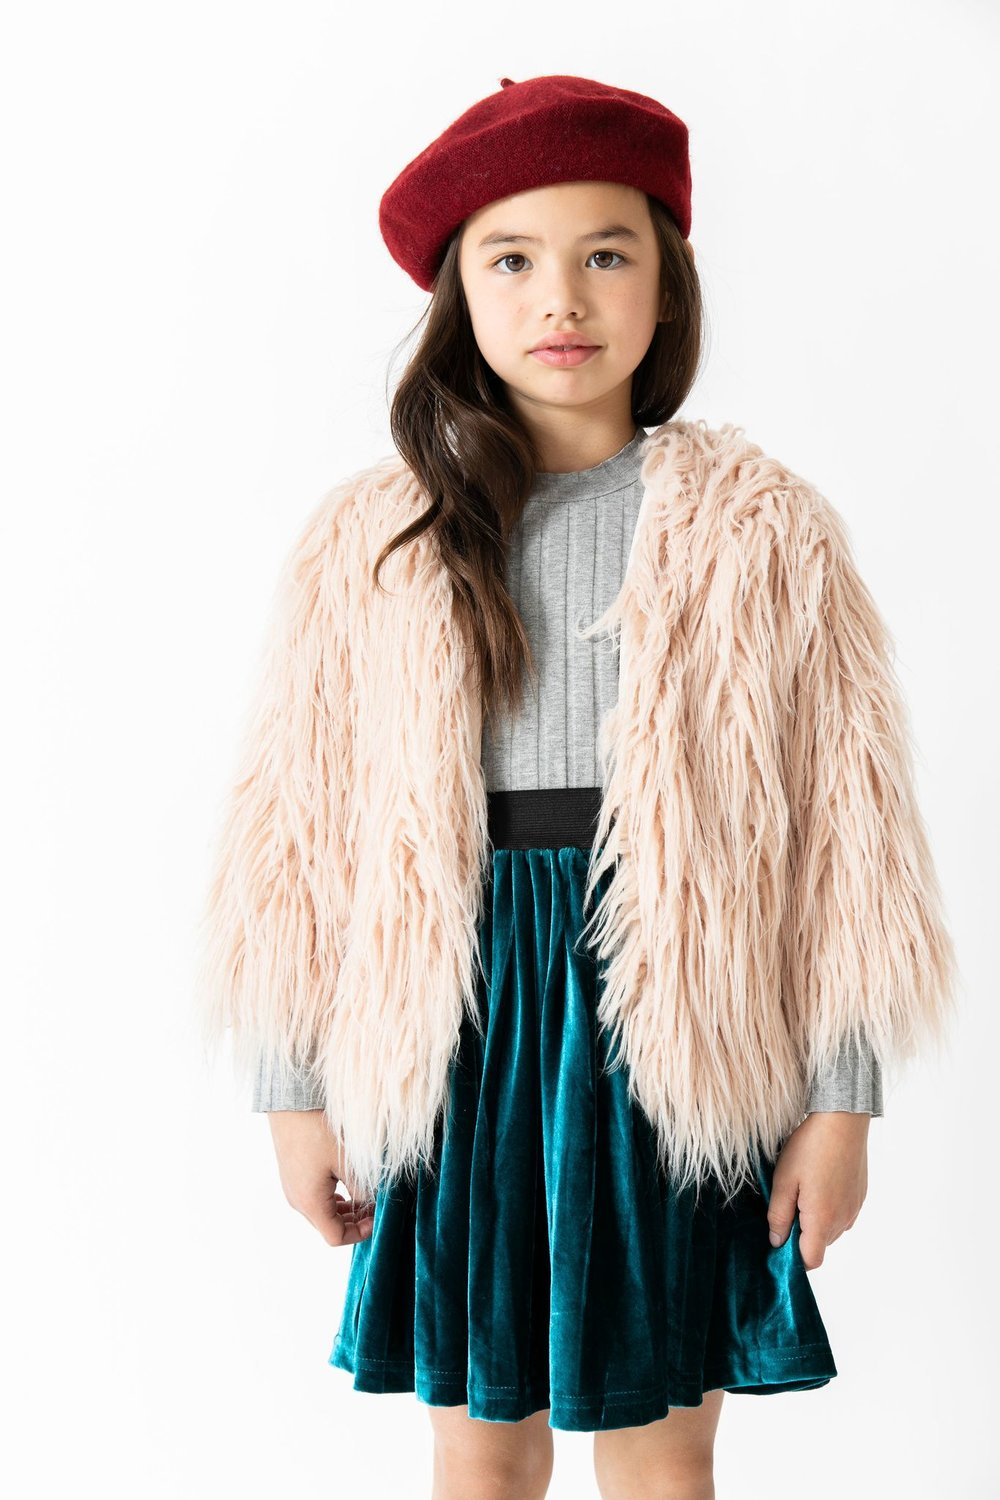 Pepper Kids Faux Fur Coat, $38-.jpg